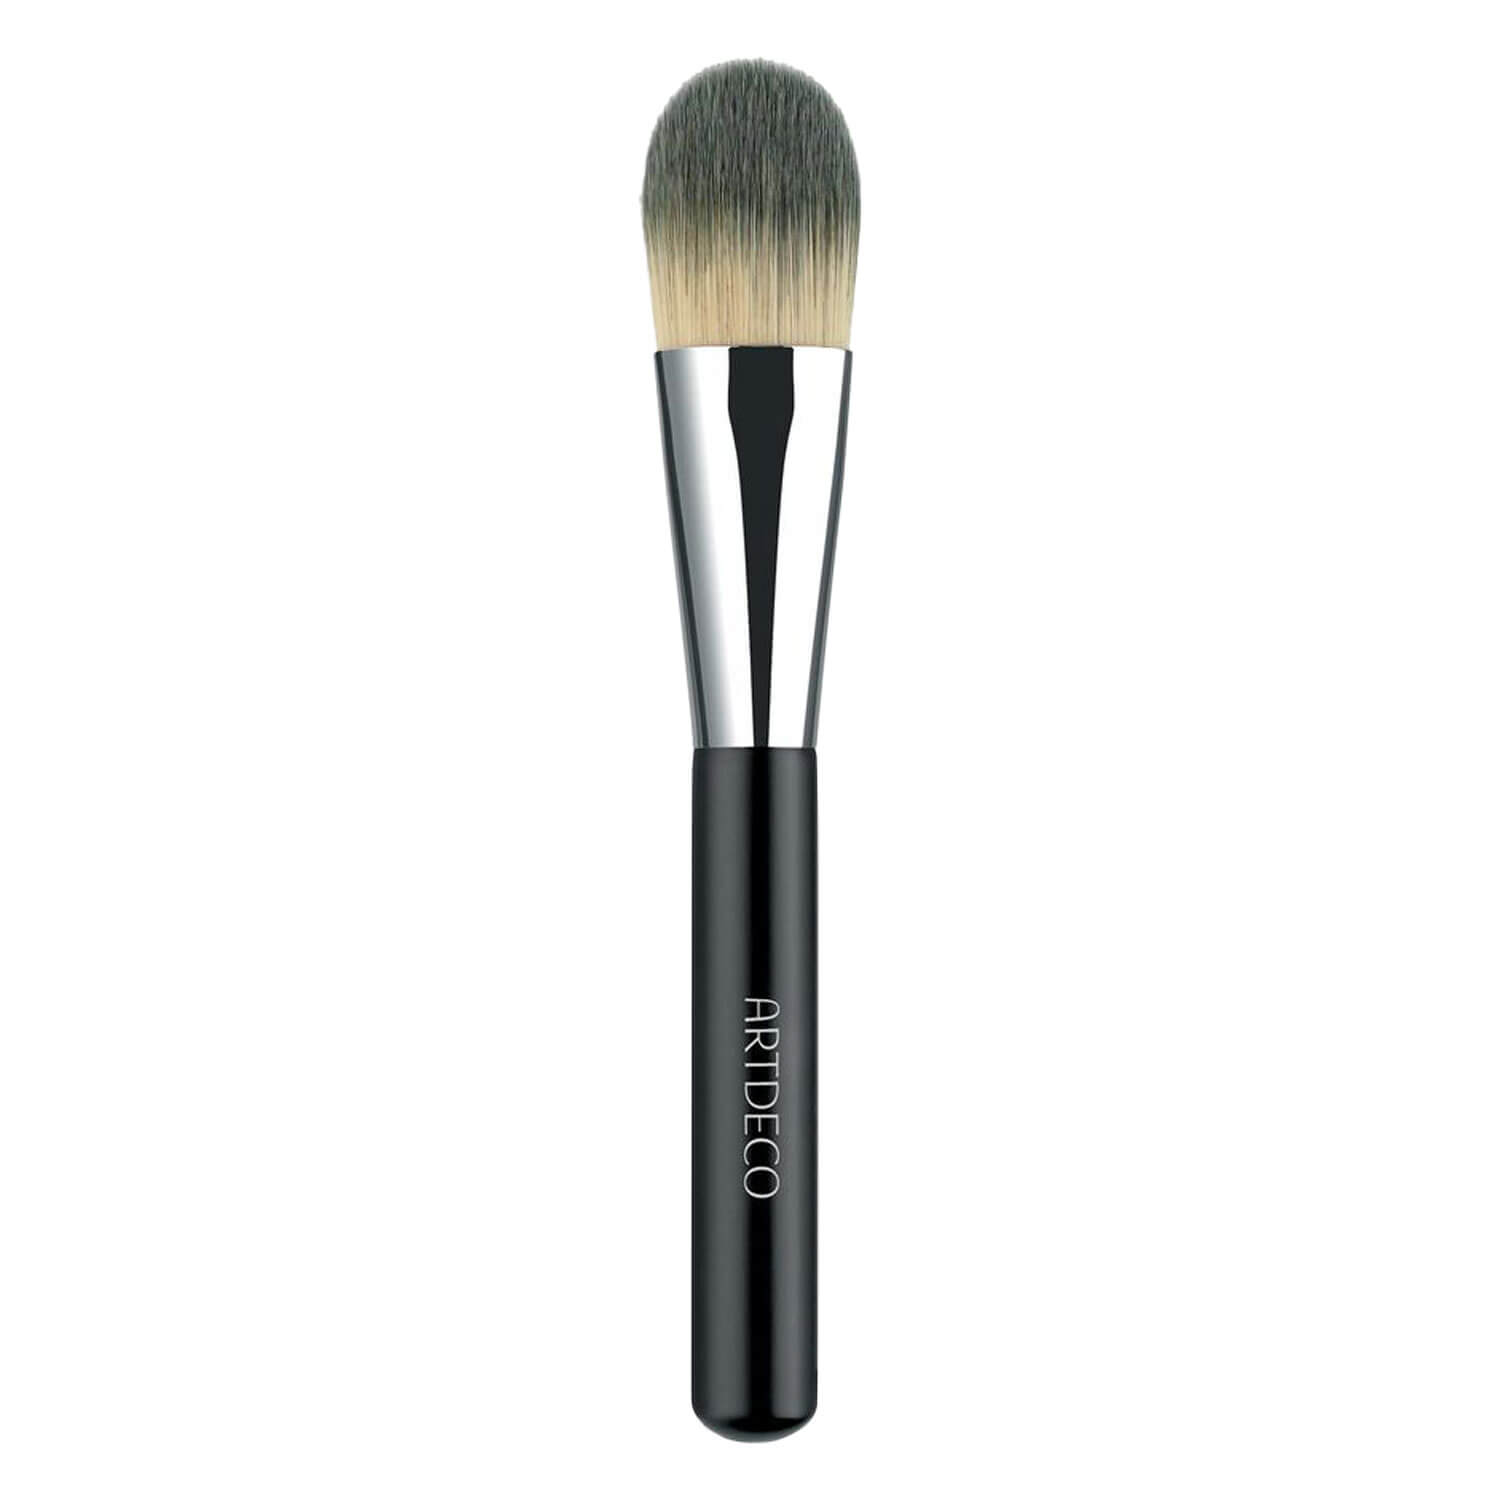 Artdeco Tools - Make-up Brush